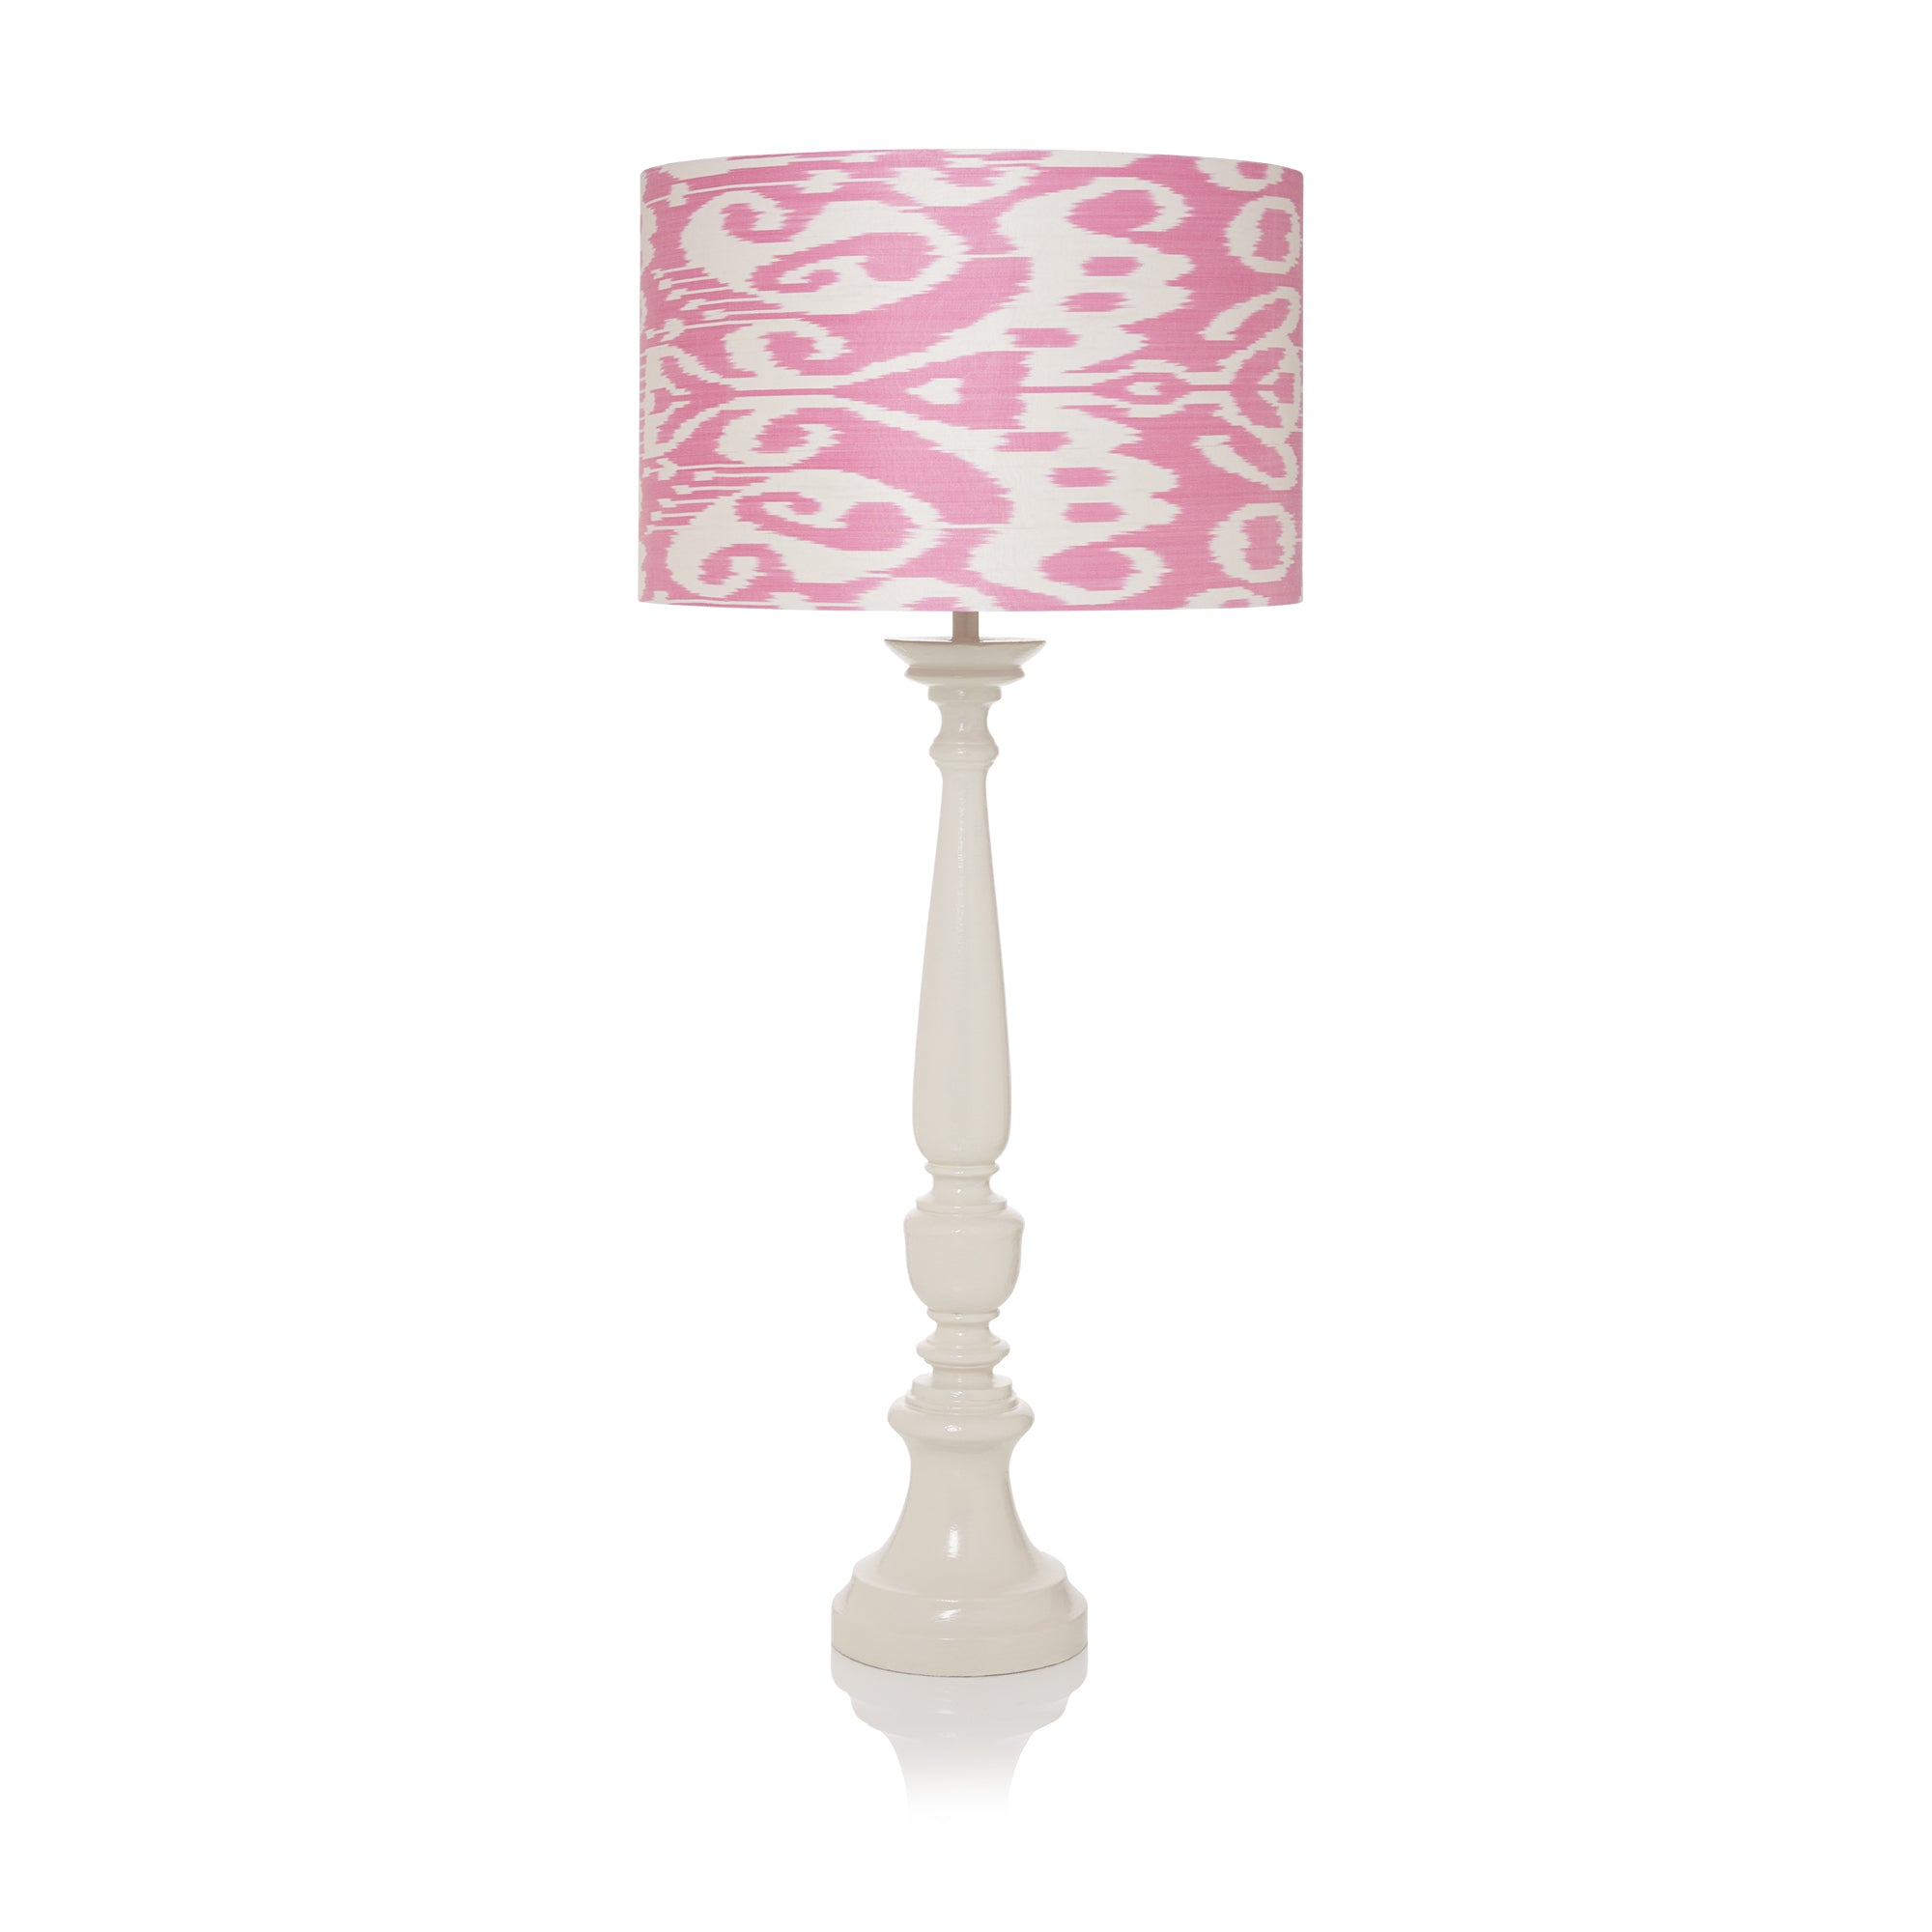 Large Stretched Pink Ikat Lampshade Shot - only 1 left